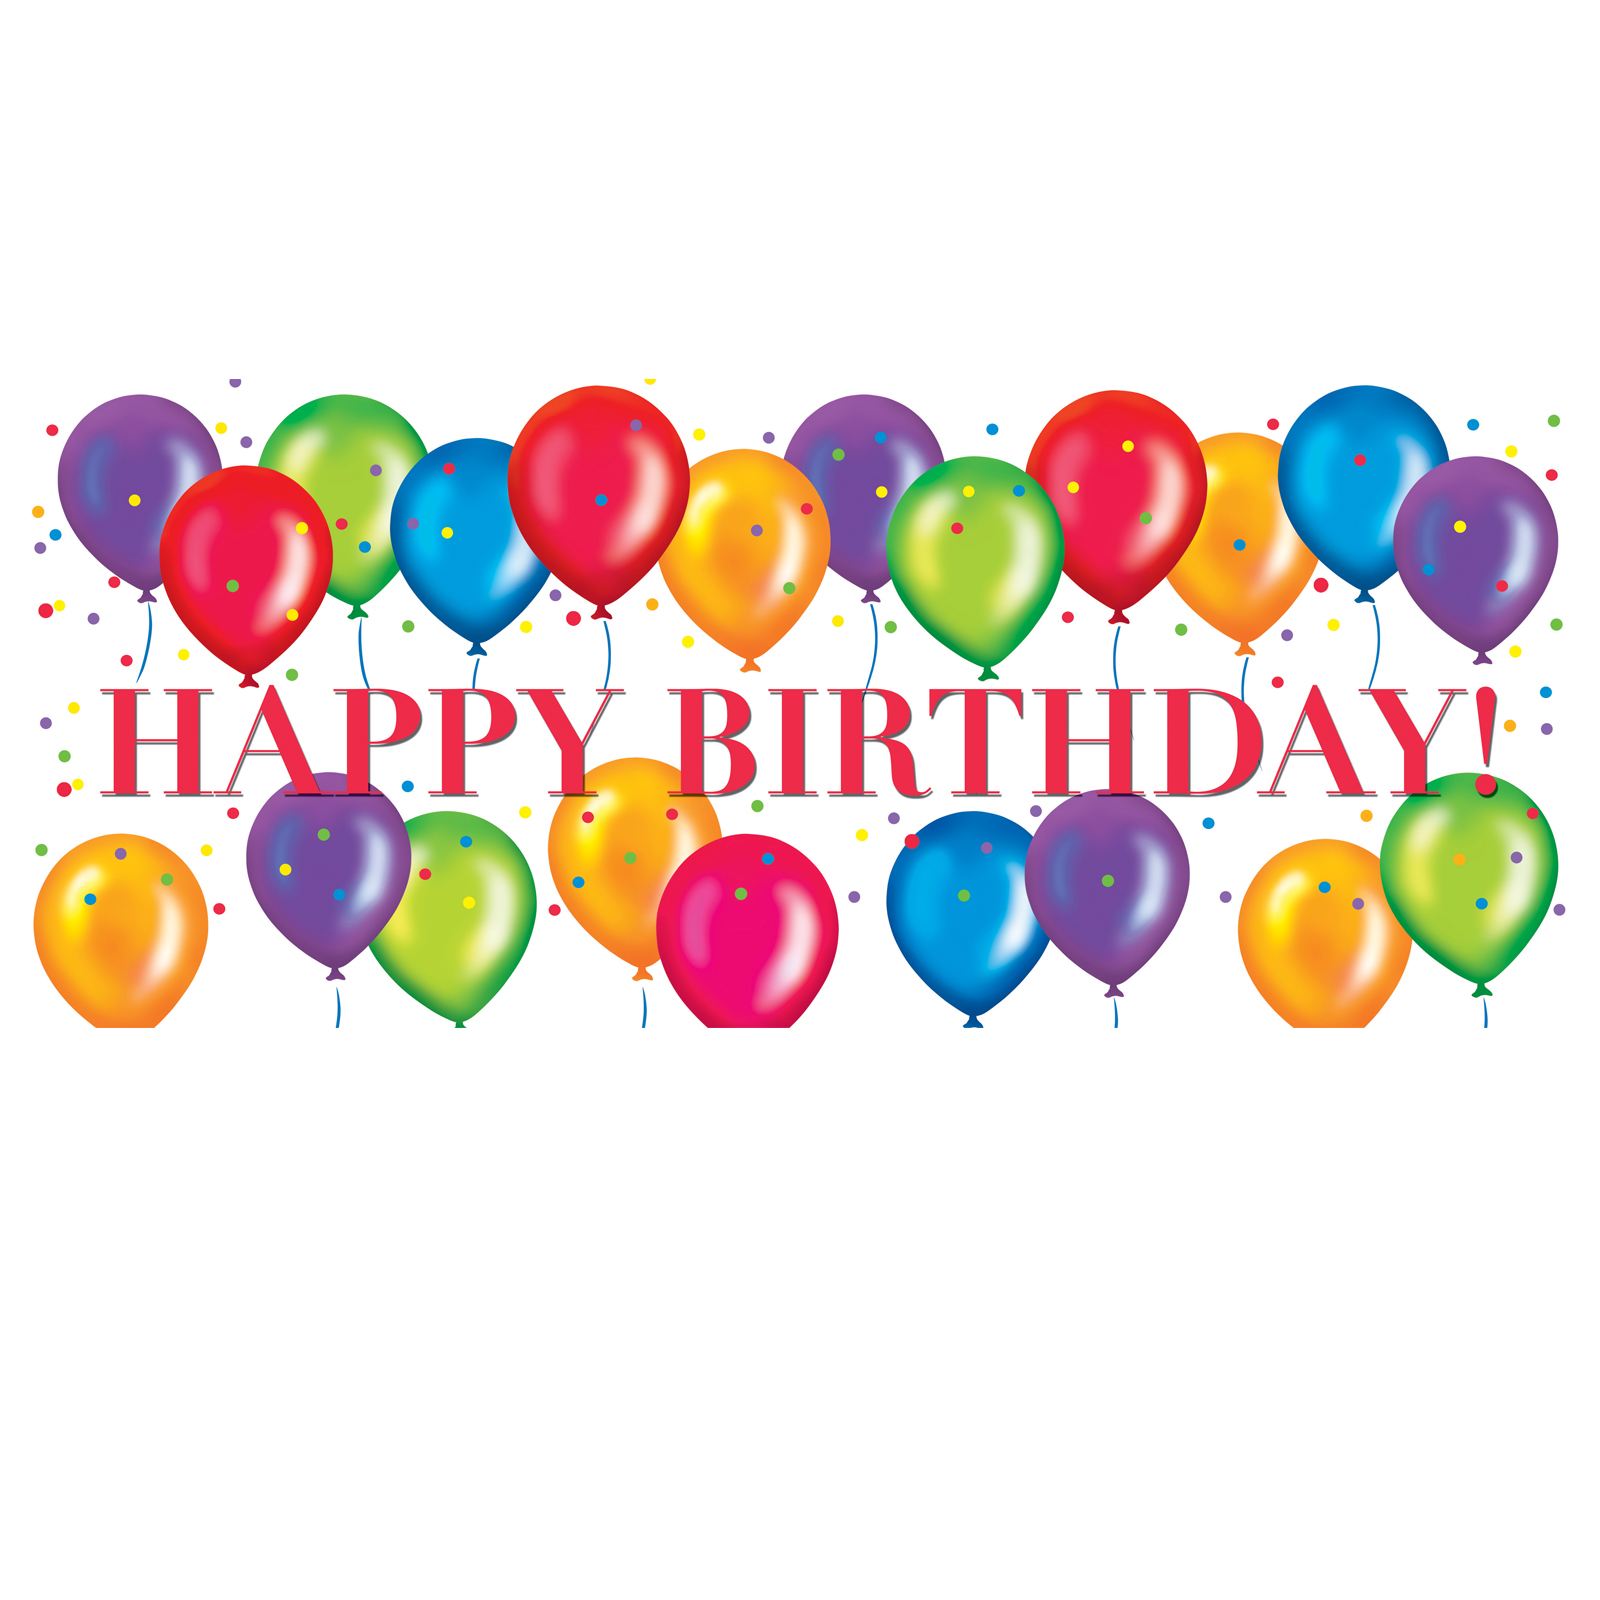 Animated Happy Birthday Clipart Clipart -Animated Happy Birthday Clipart Clipart Panda Free Clipart Images-0